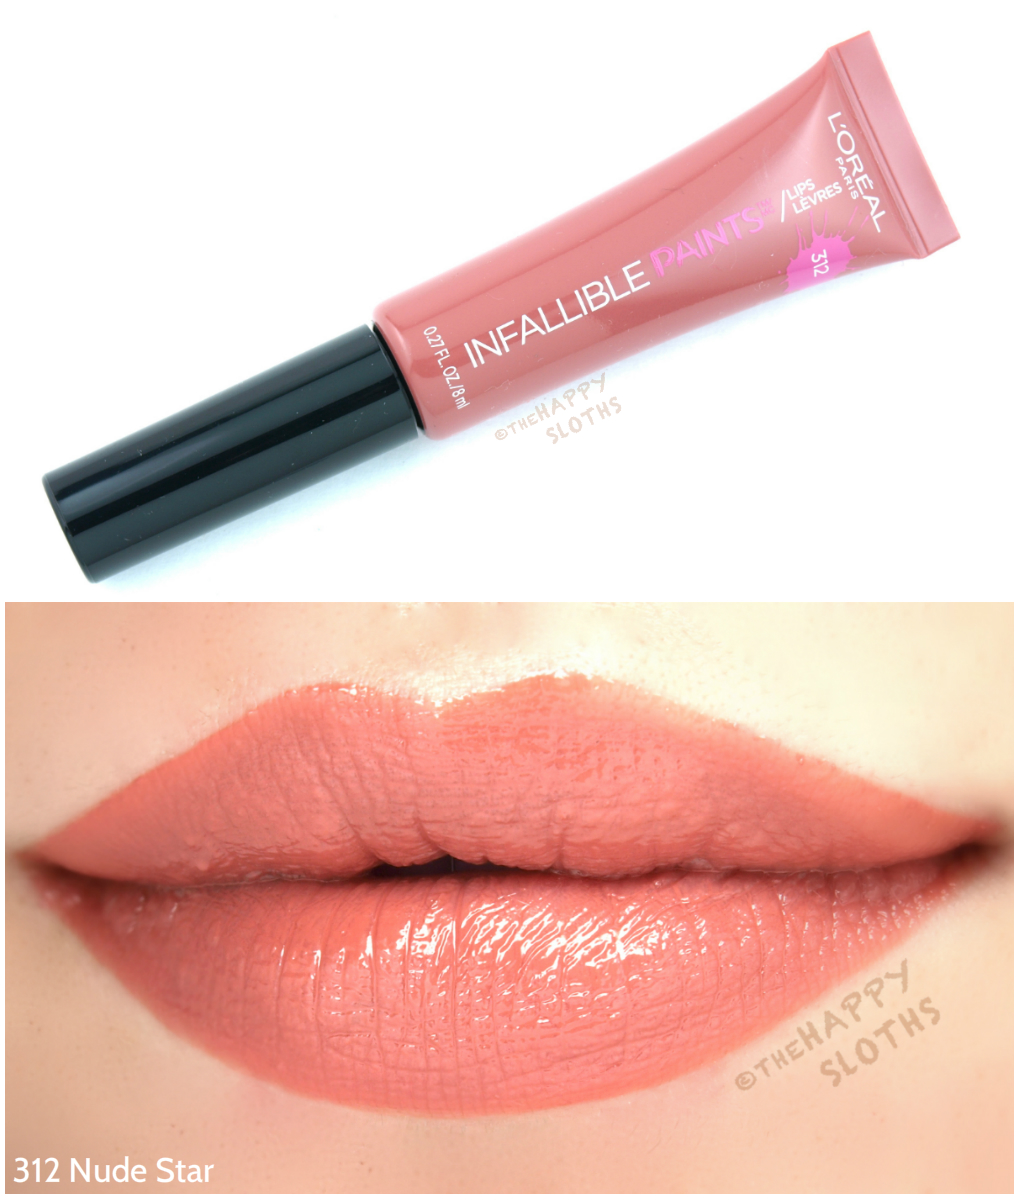 L'Oreal Infallible Lip Paints 312 Nude Star